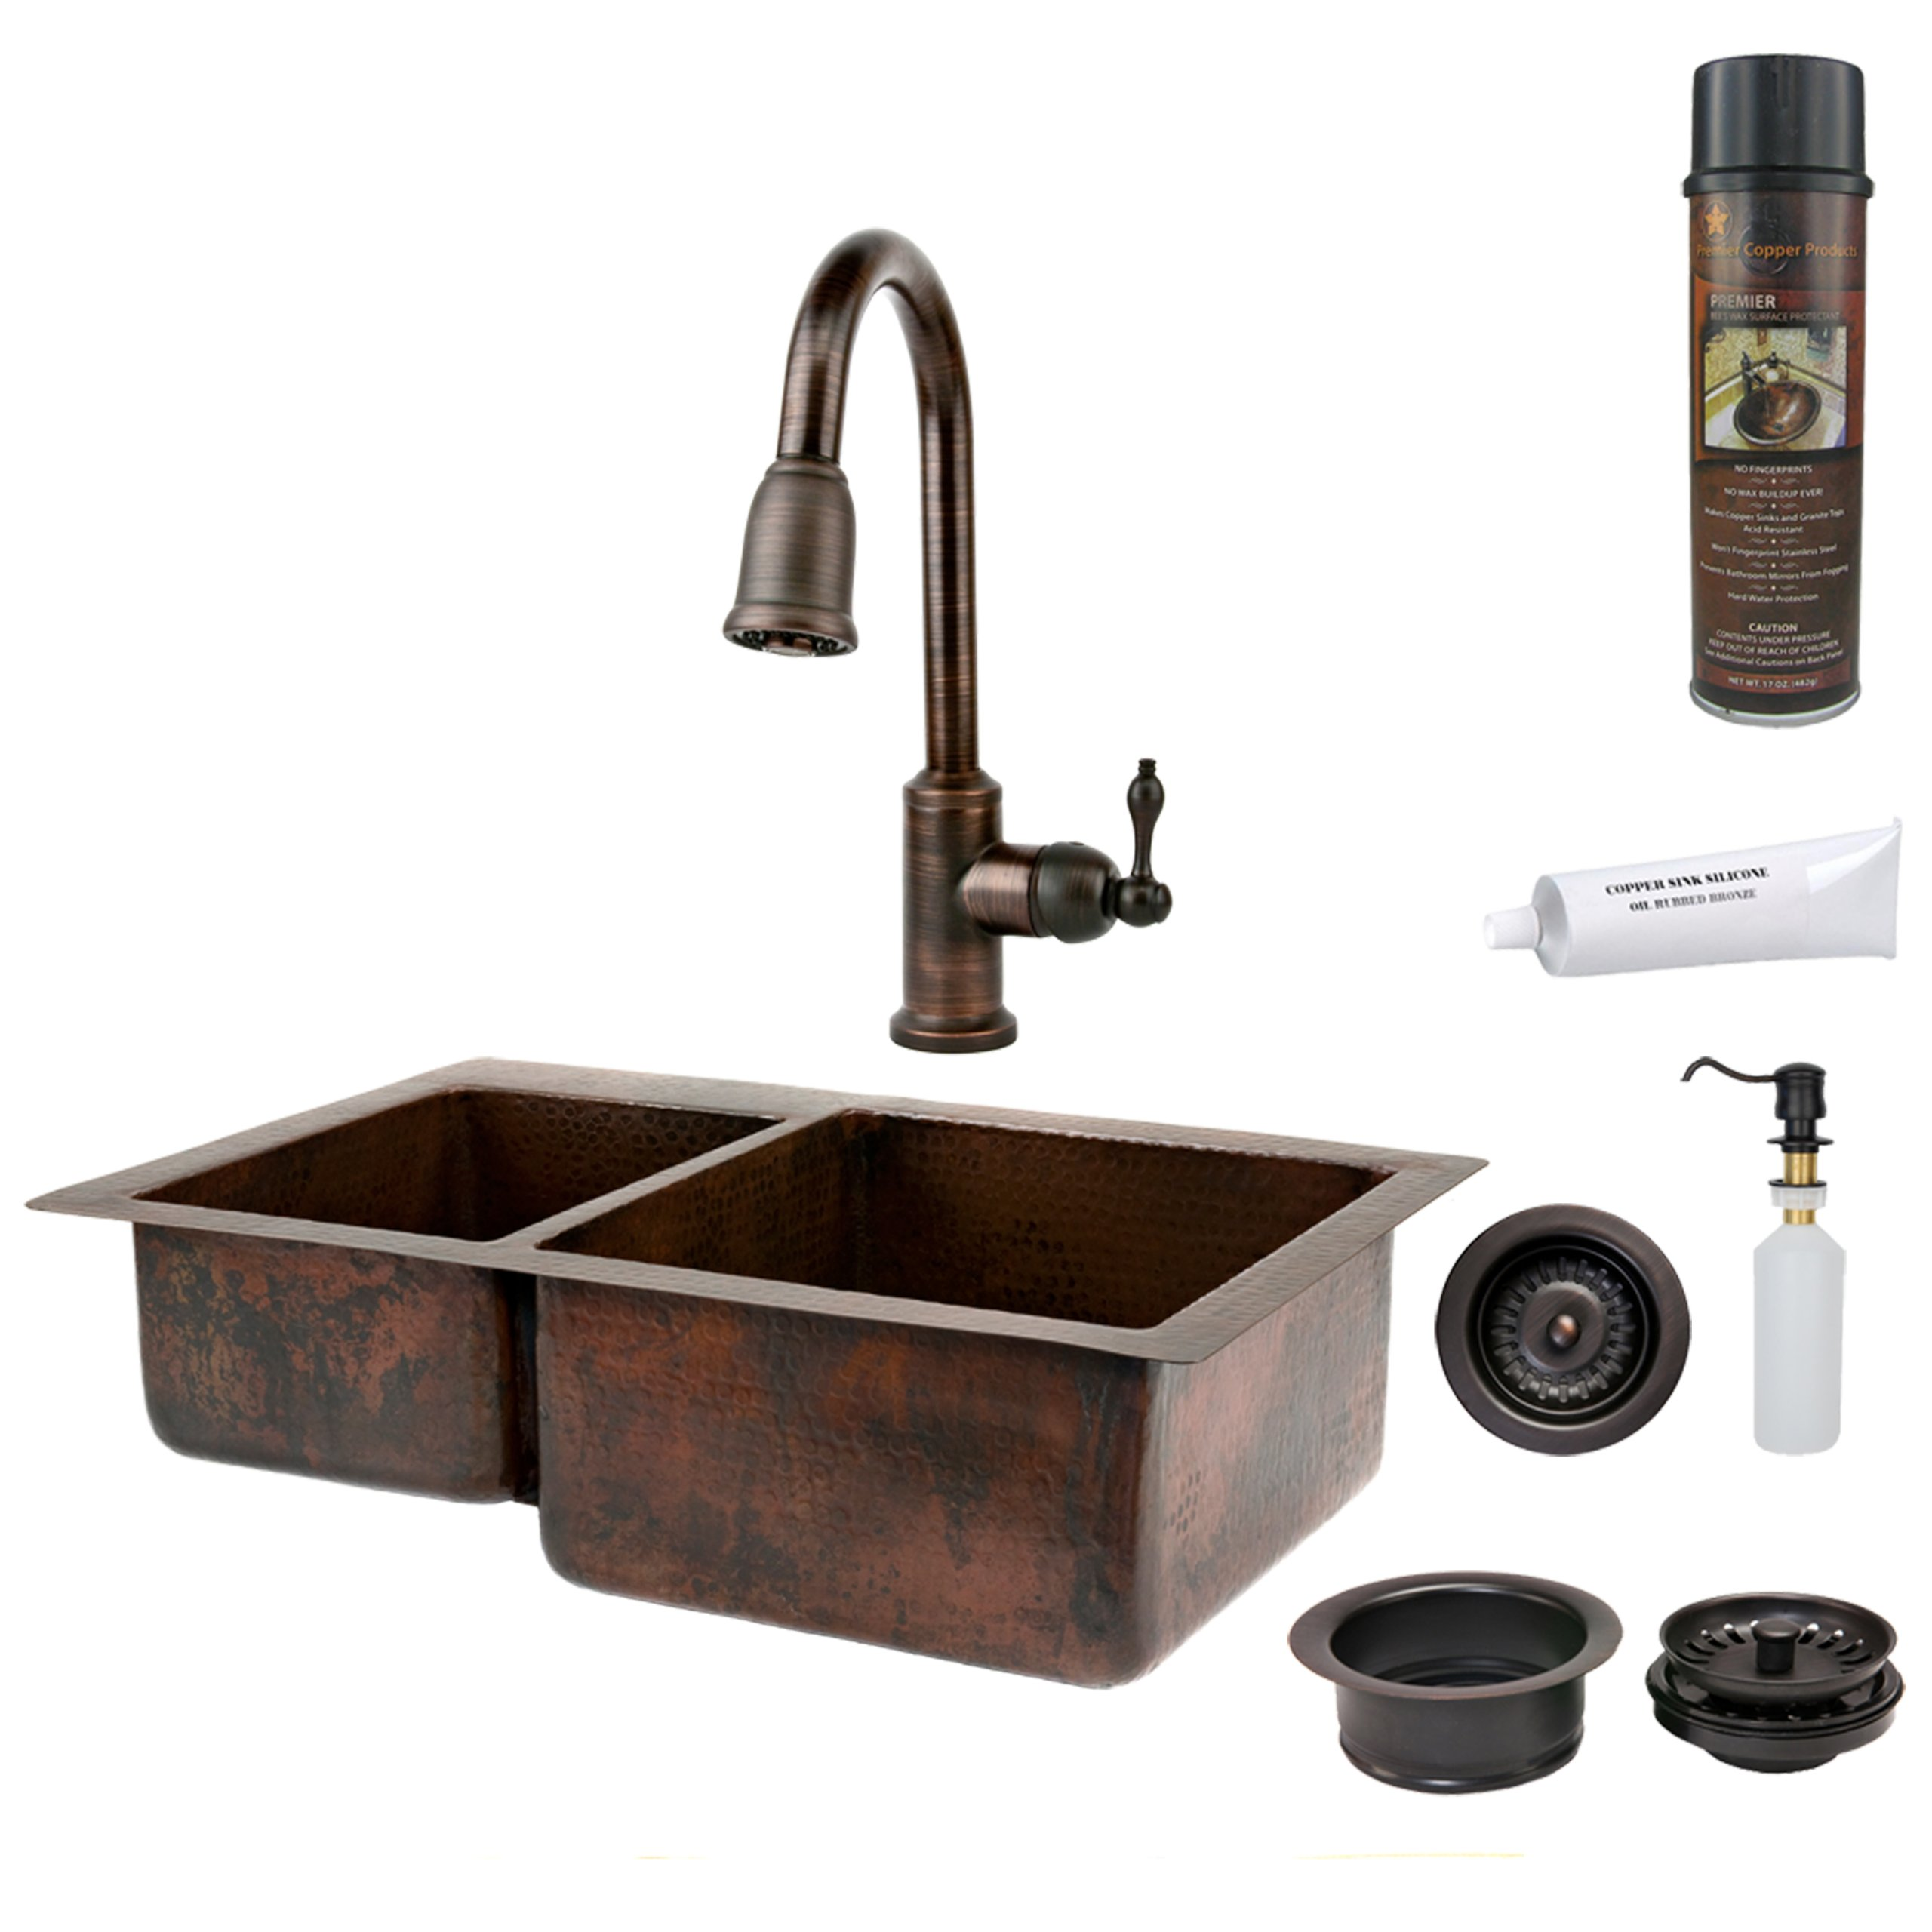 Premier Copper Products KSP2_K40DB33229 33-Inch Hammered Copper Kitchen 40/60 Double Basin Sink with Pull Down Faucet, Oil Rubbed Bronze